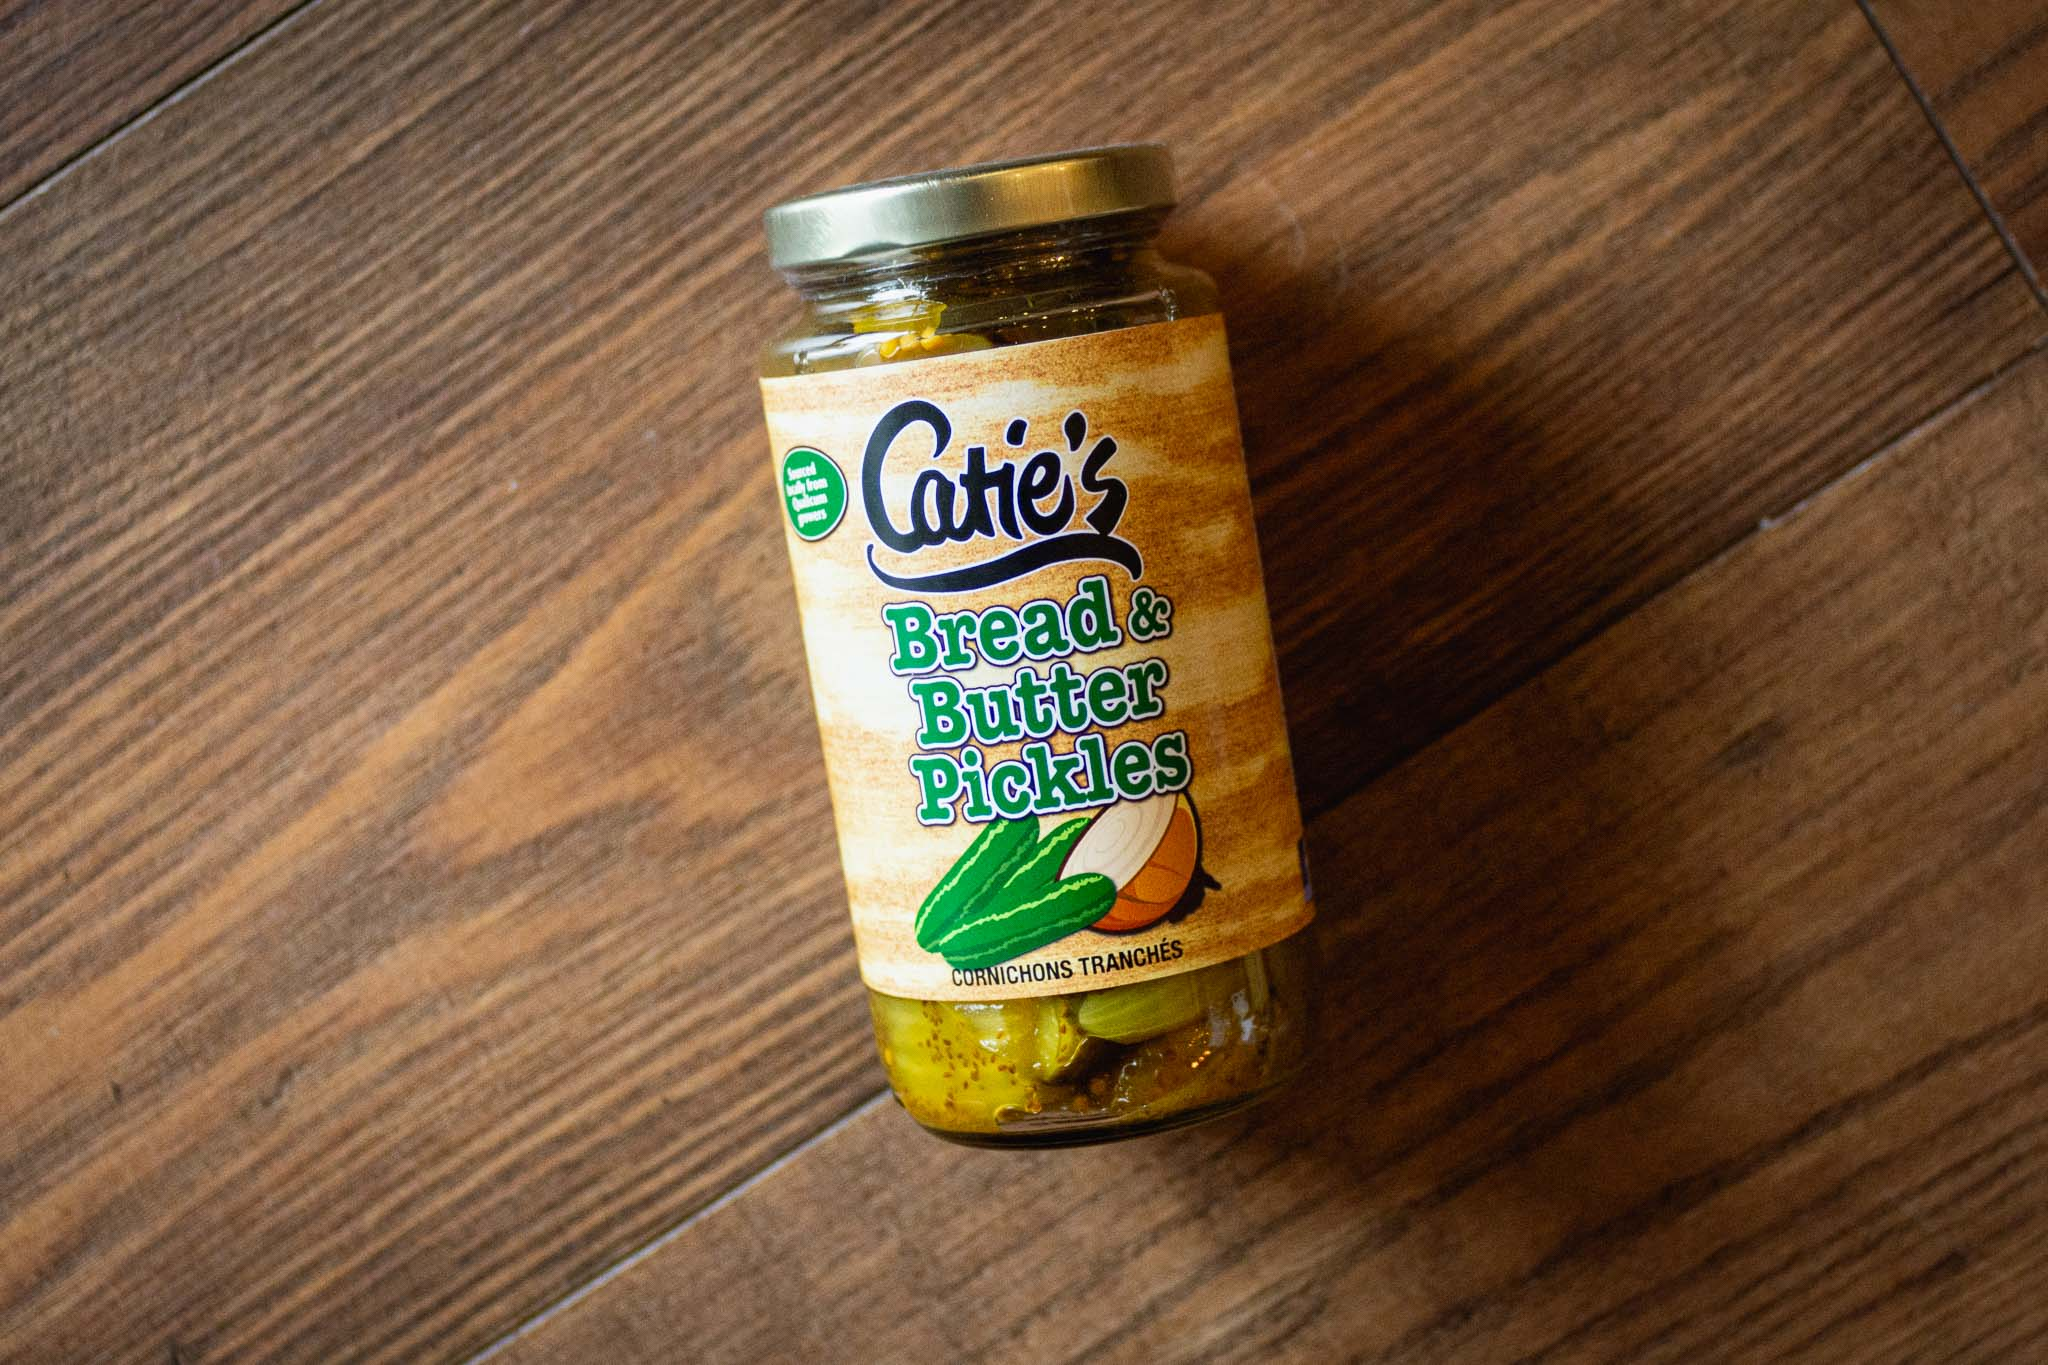 Bread & Butter Pickles by Catie's Preserves